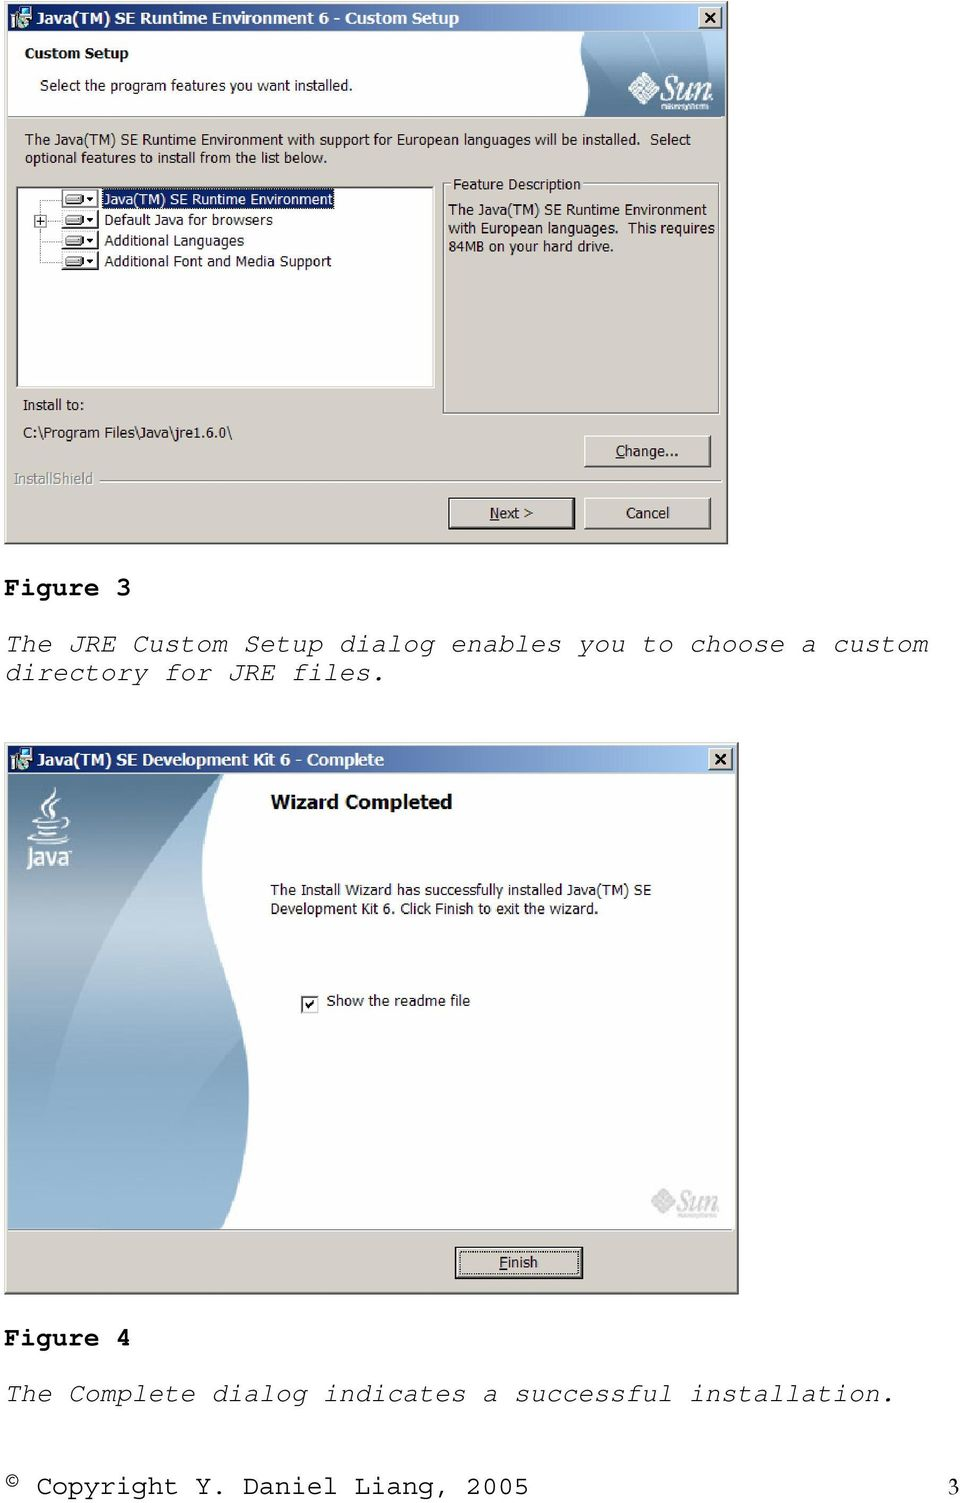 Figure 4 The Complete dialog indicates a